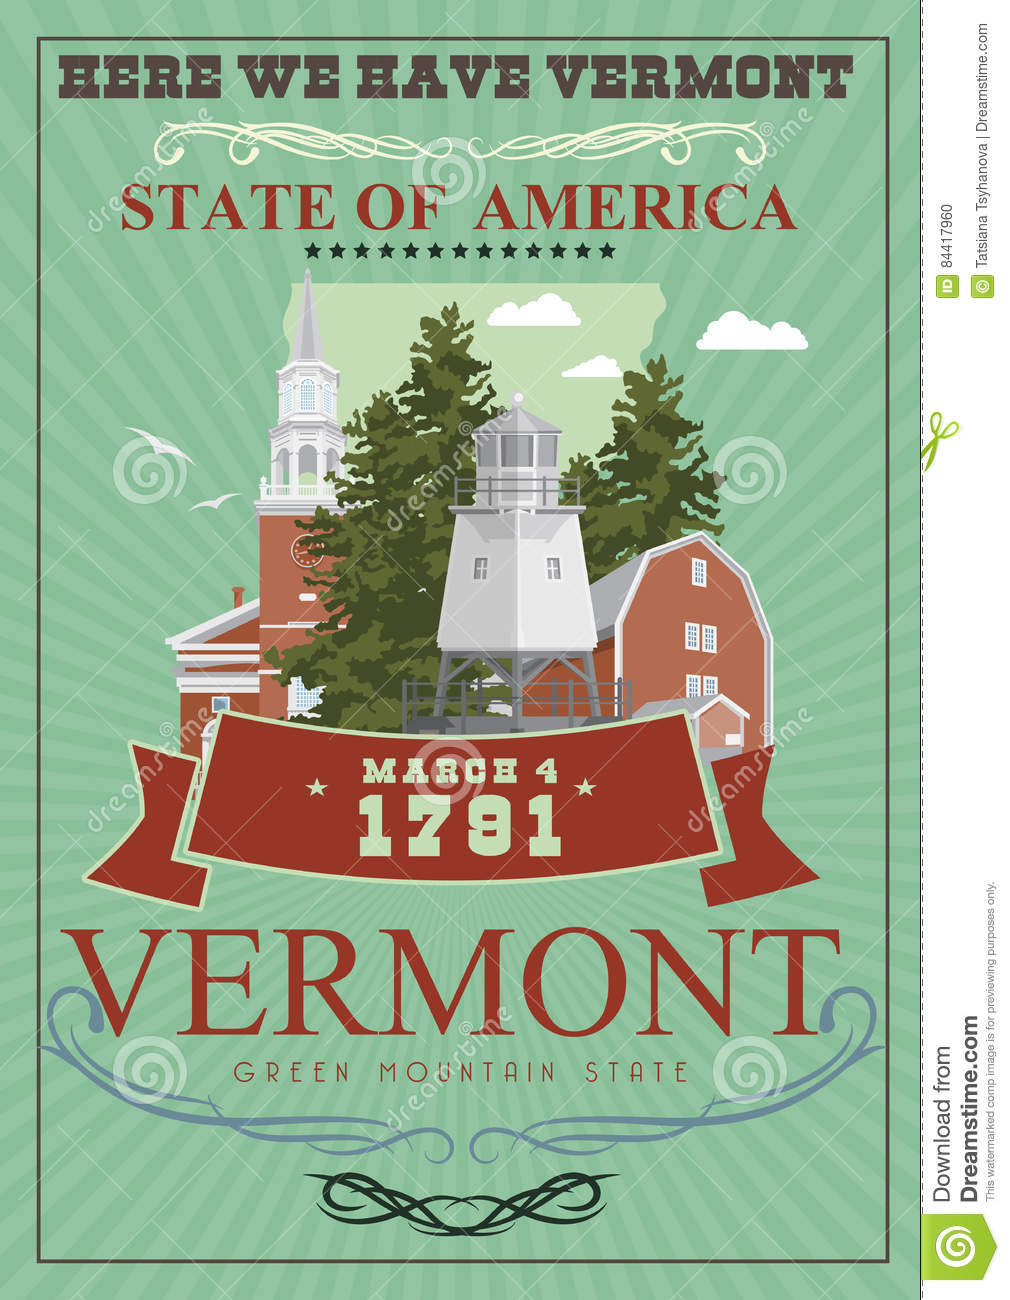 Vermont vector american poster. USA travel illustration. United States of America colorful greeting card